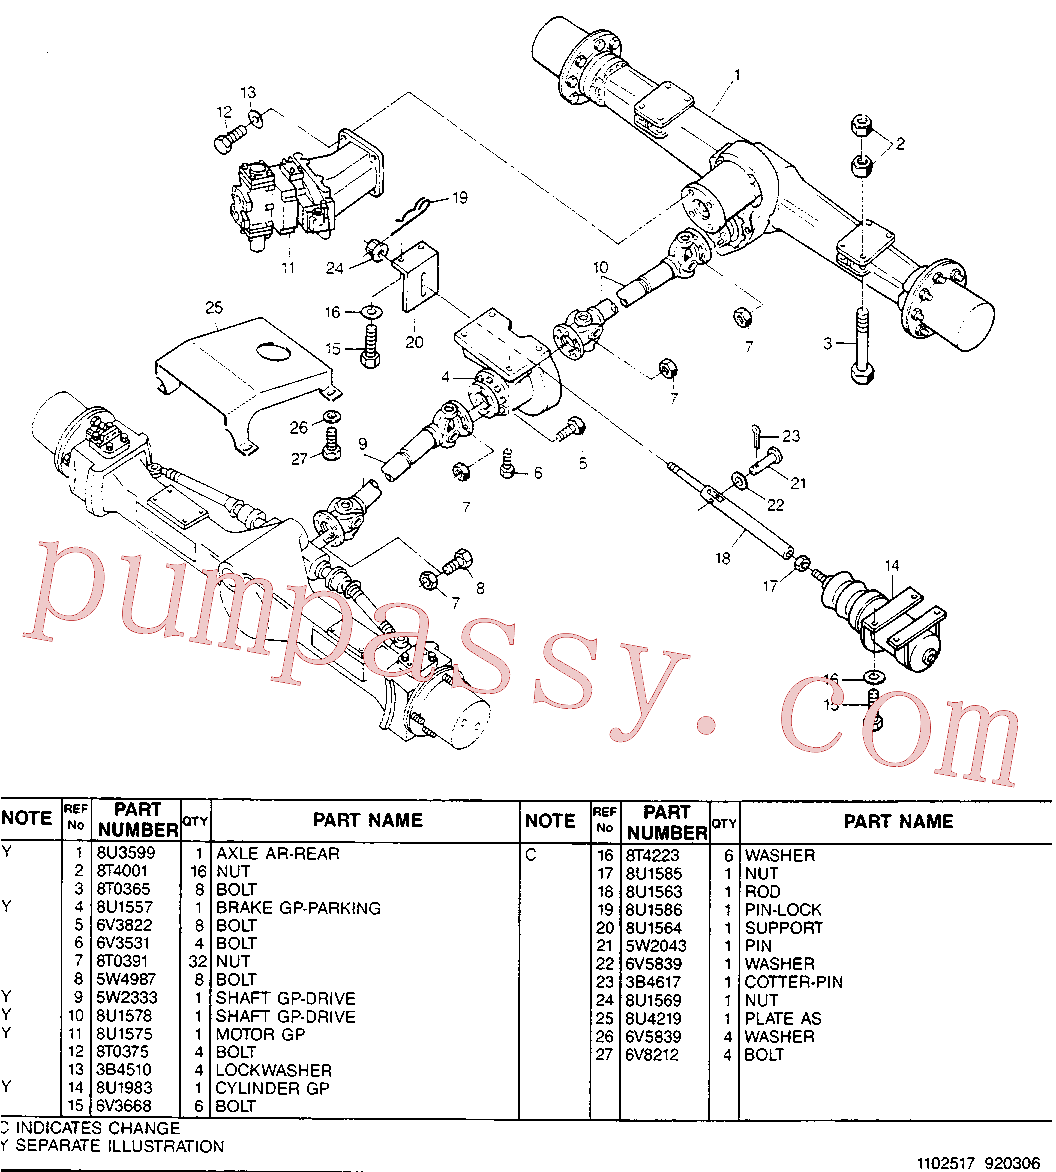 CAT 8U-2506 for M316D Wheeled Excavator(WHEX) chassis & undercarriage 8U-1530 Assembly